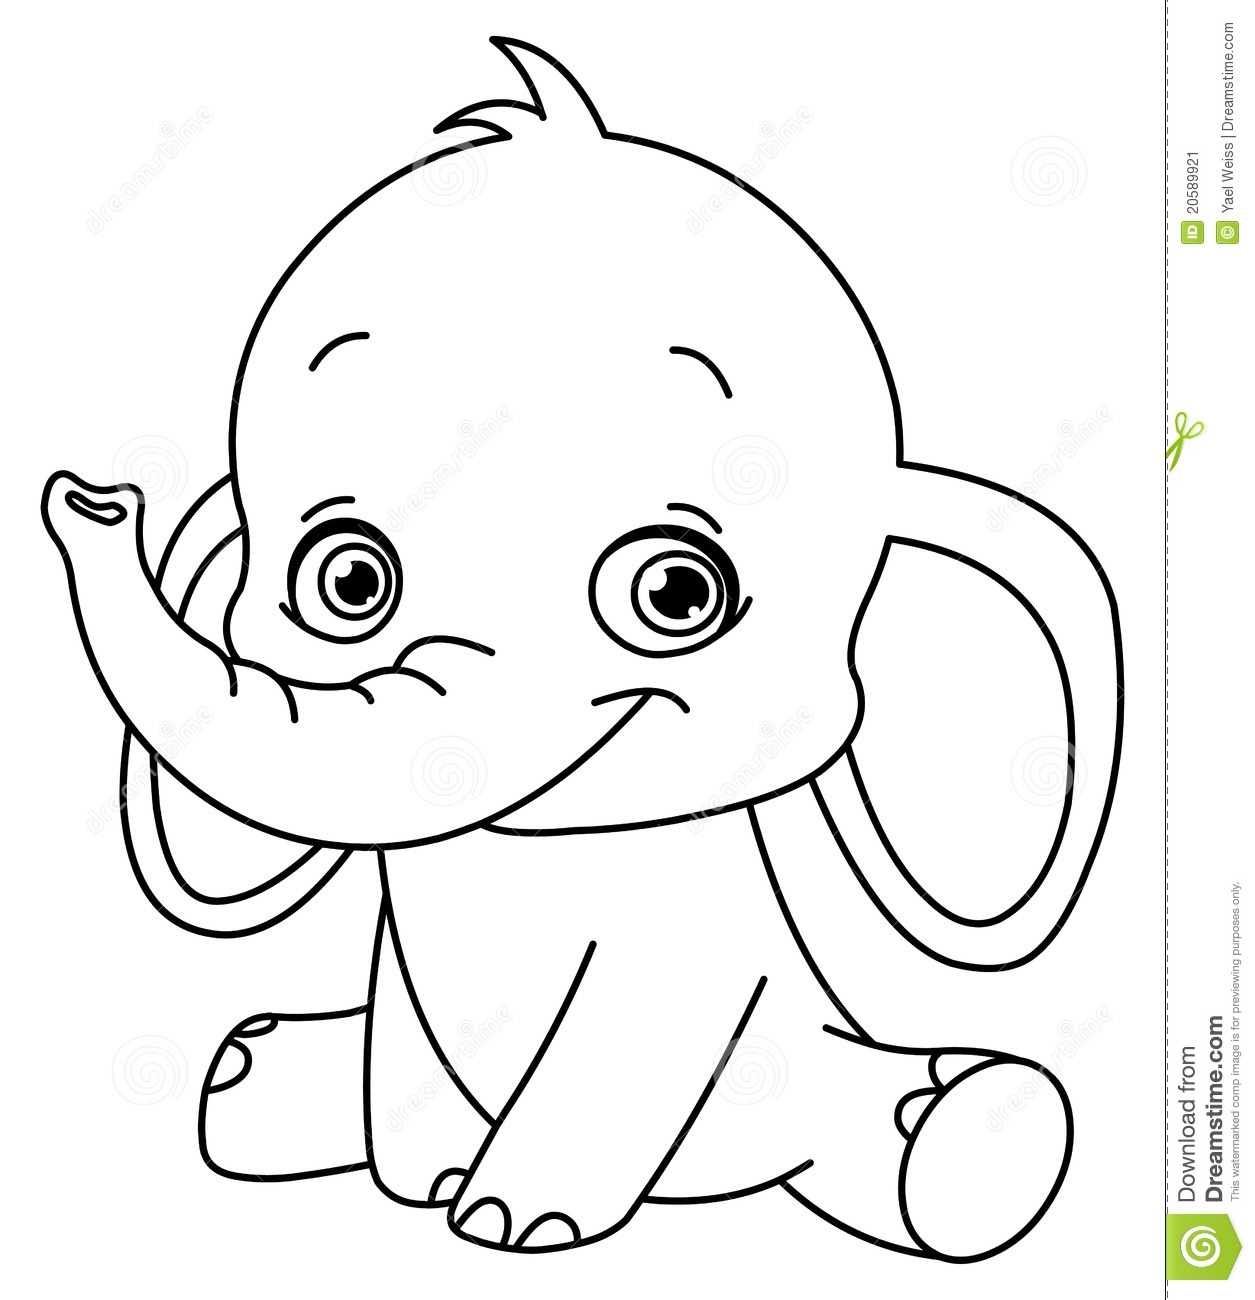 Outlined Baby Elephant Stock Vector Illustration Of Black